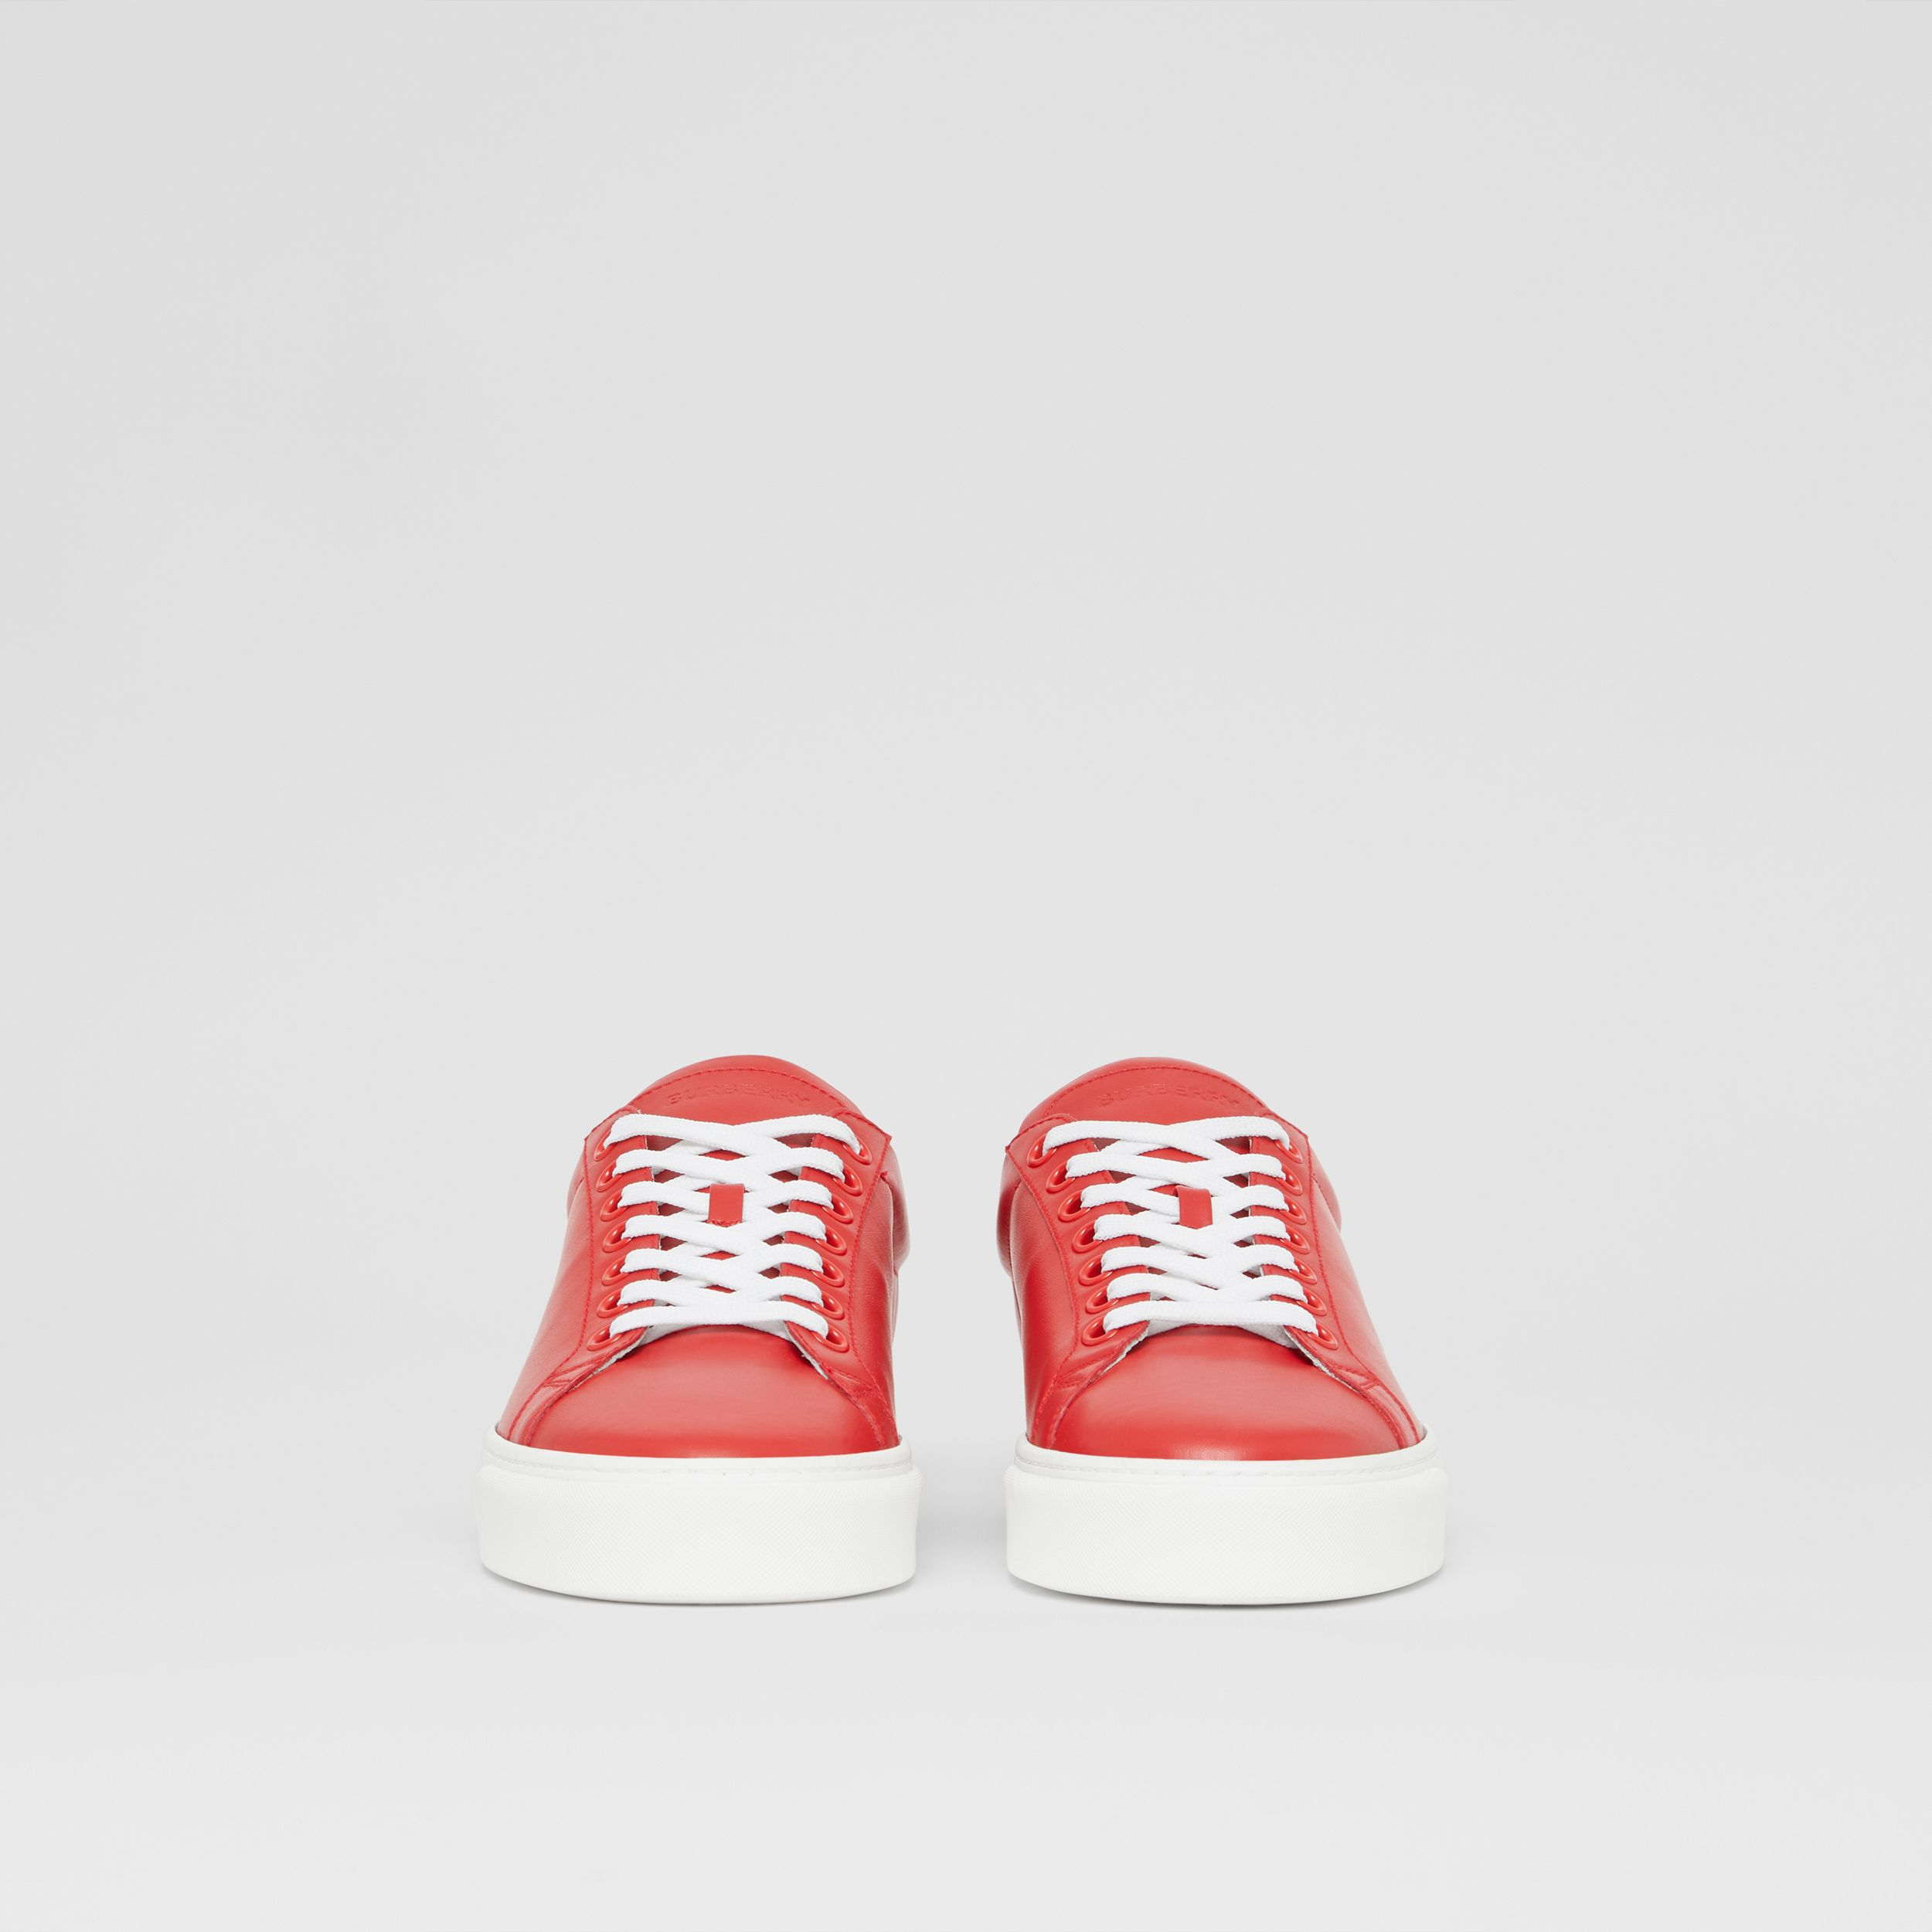 Bio-based Sole Leather Sneakers in Bright Red - Men | Burberry United States - 4